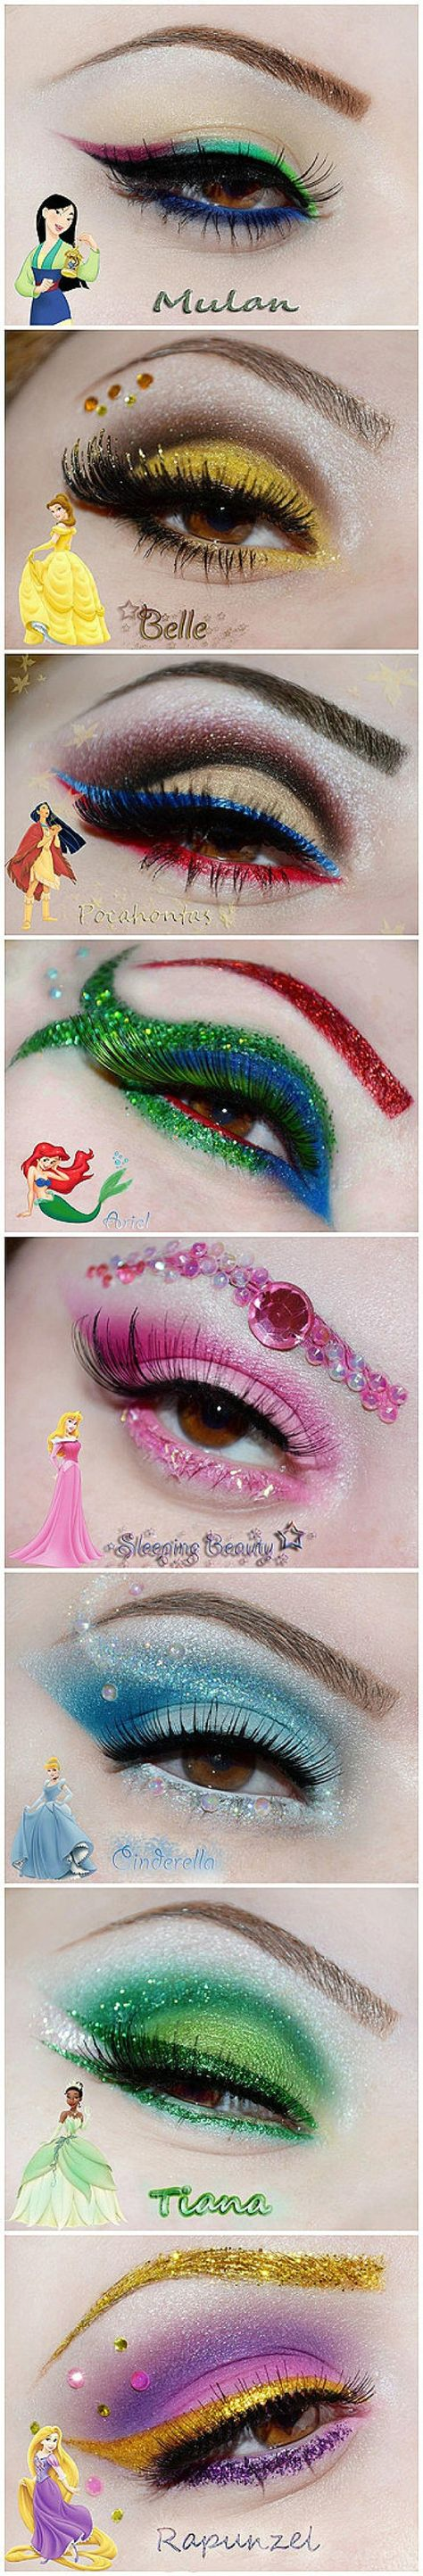 Who is that girl we see? Wearing amazing eyeliner (e)  Check out these incredible Disney inspired makeup designs!